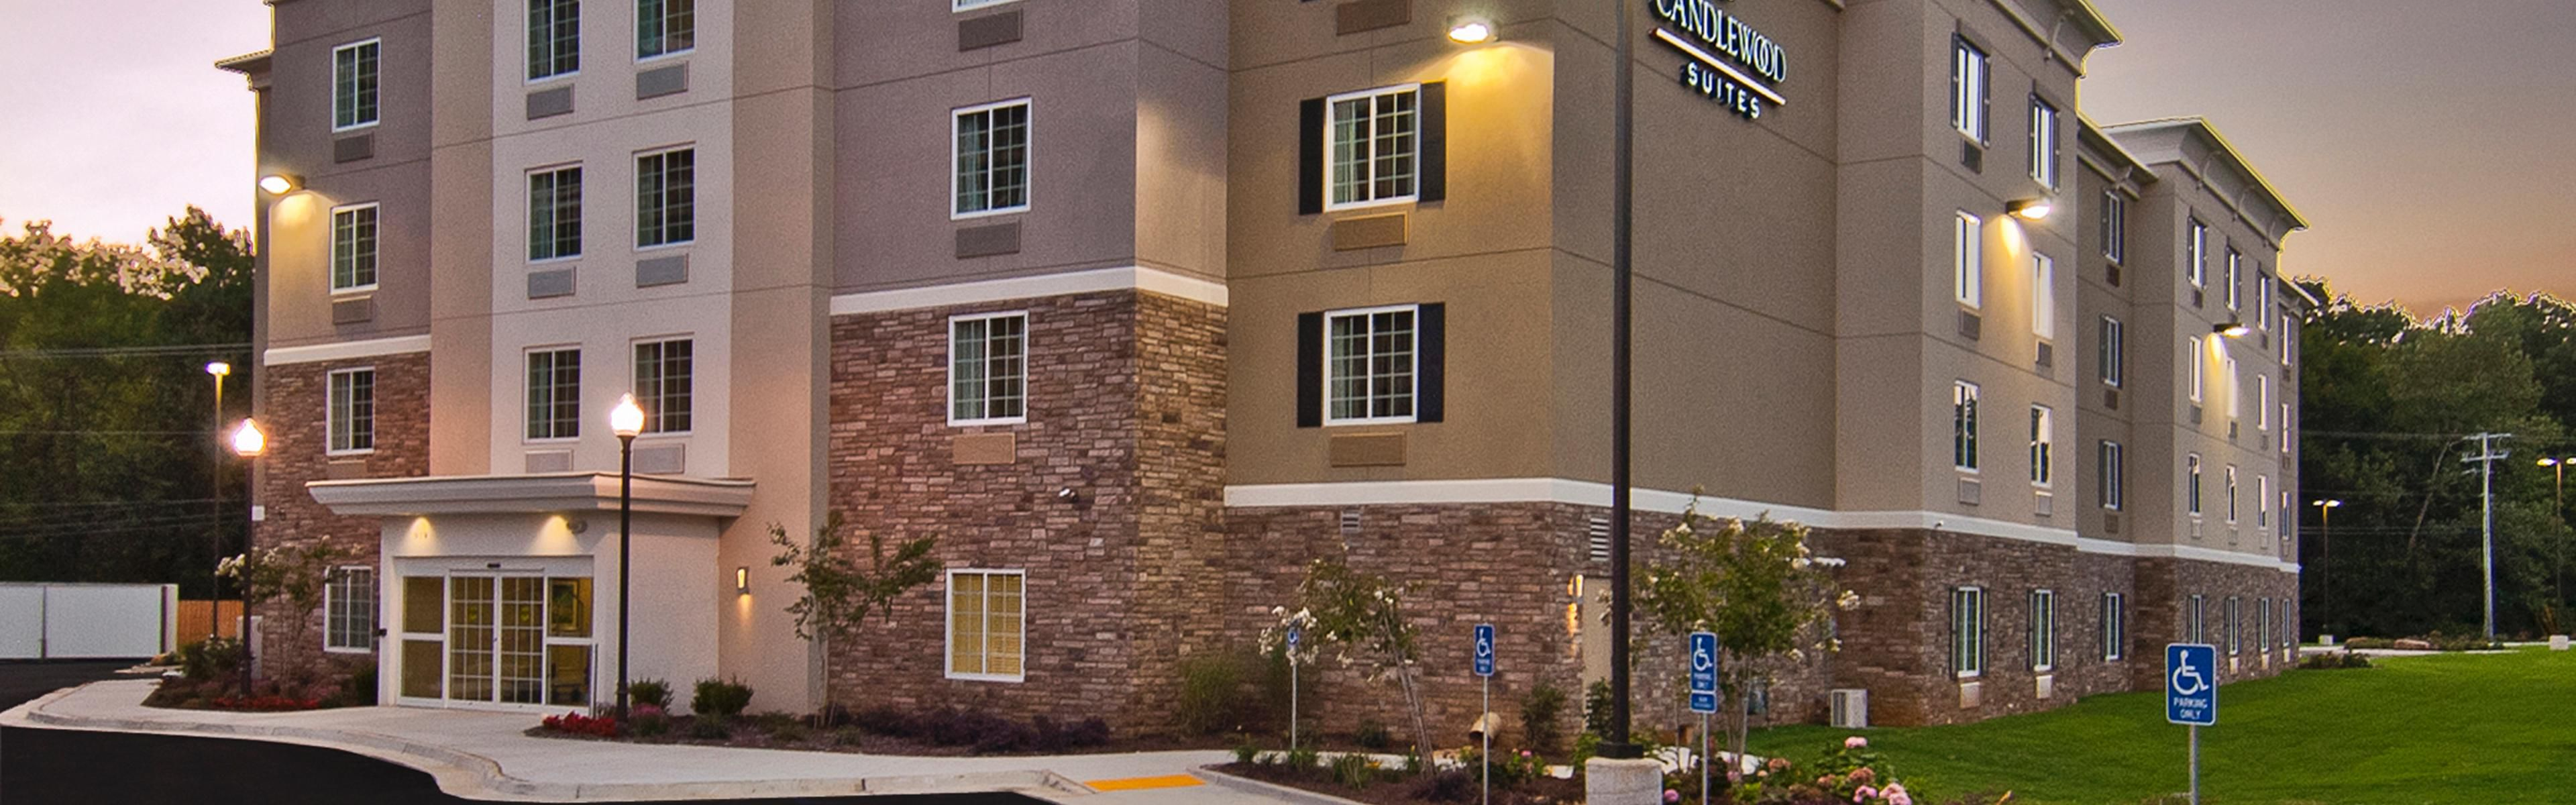 Candlewood Suites Tupelo North image 0